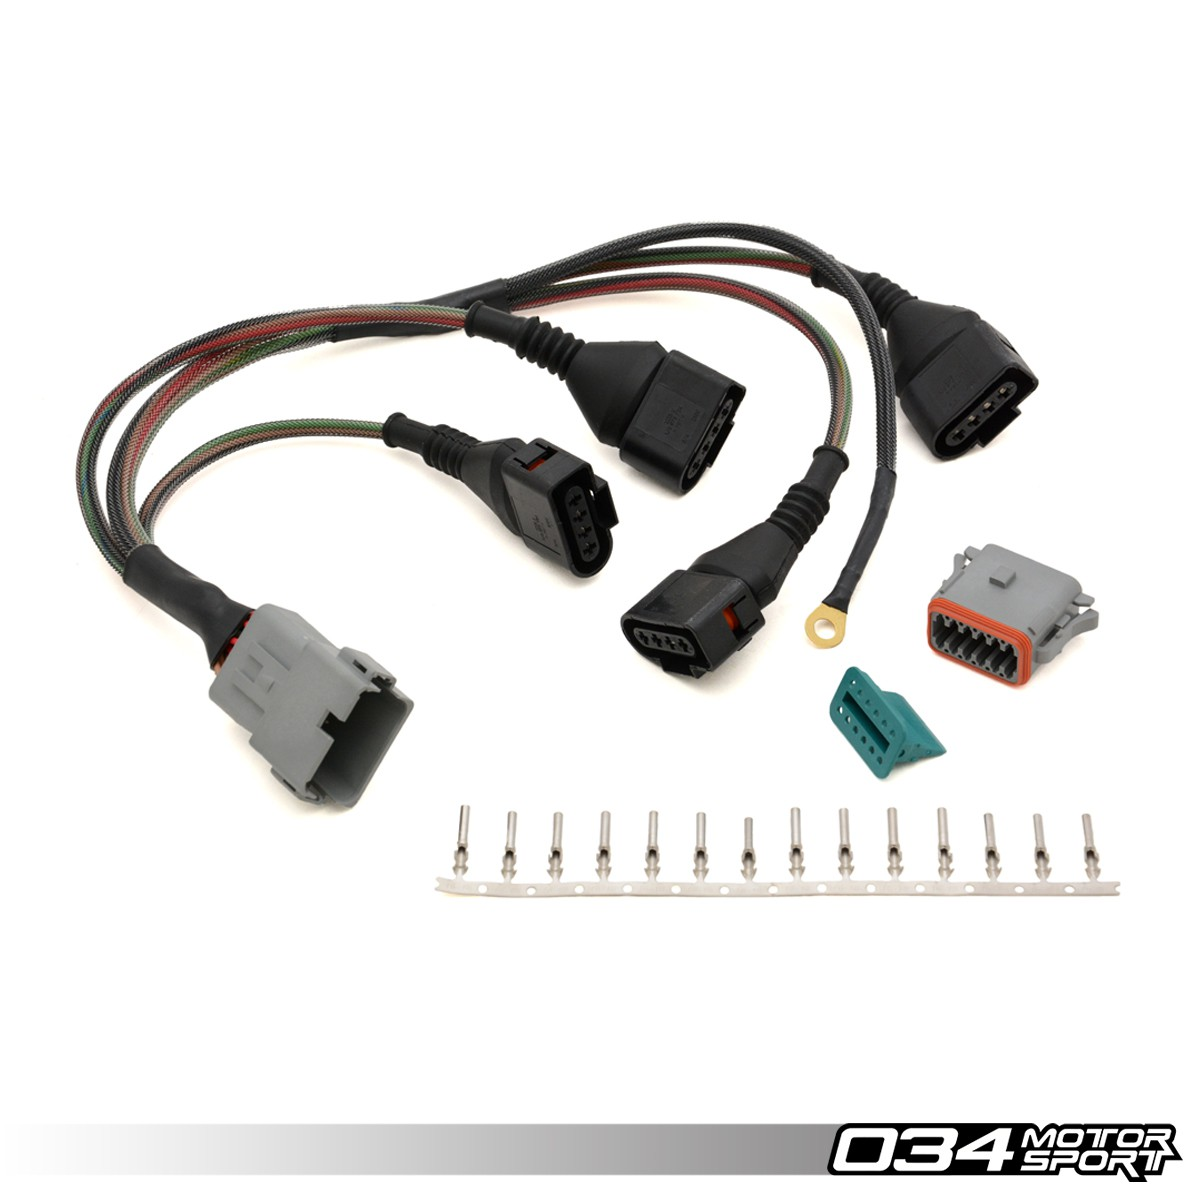 repair update harness audi volkswagen 18t with 4 wire coils 034motorsport 034 701 0004 2 repair update harness, audi volkswagen 1 8t with 4 wire coils wire harness repair kit at pacquiaovsvargaslive.co